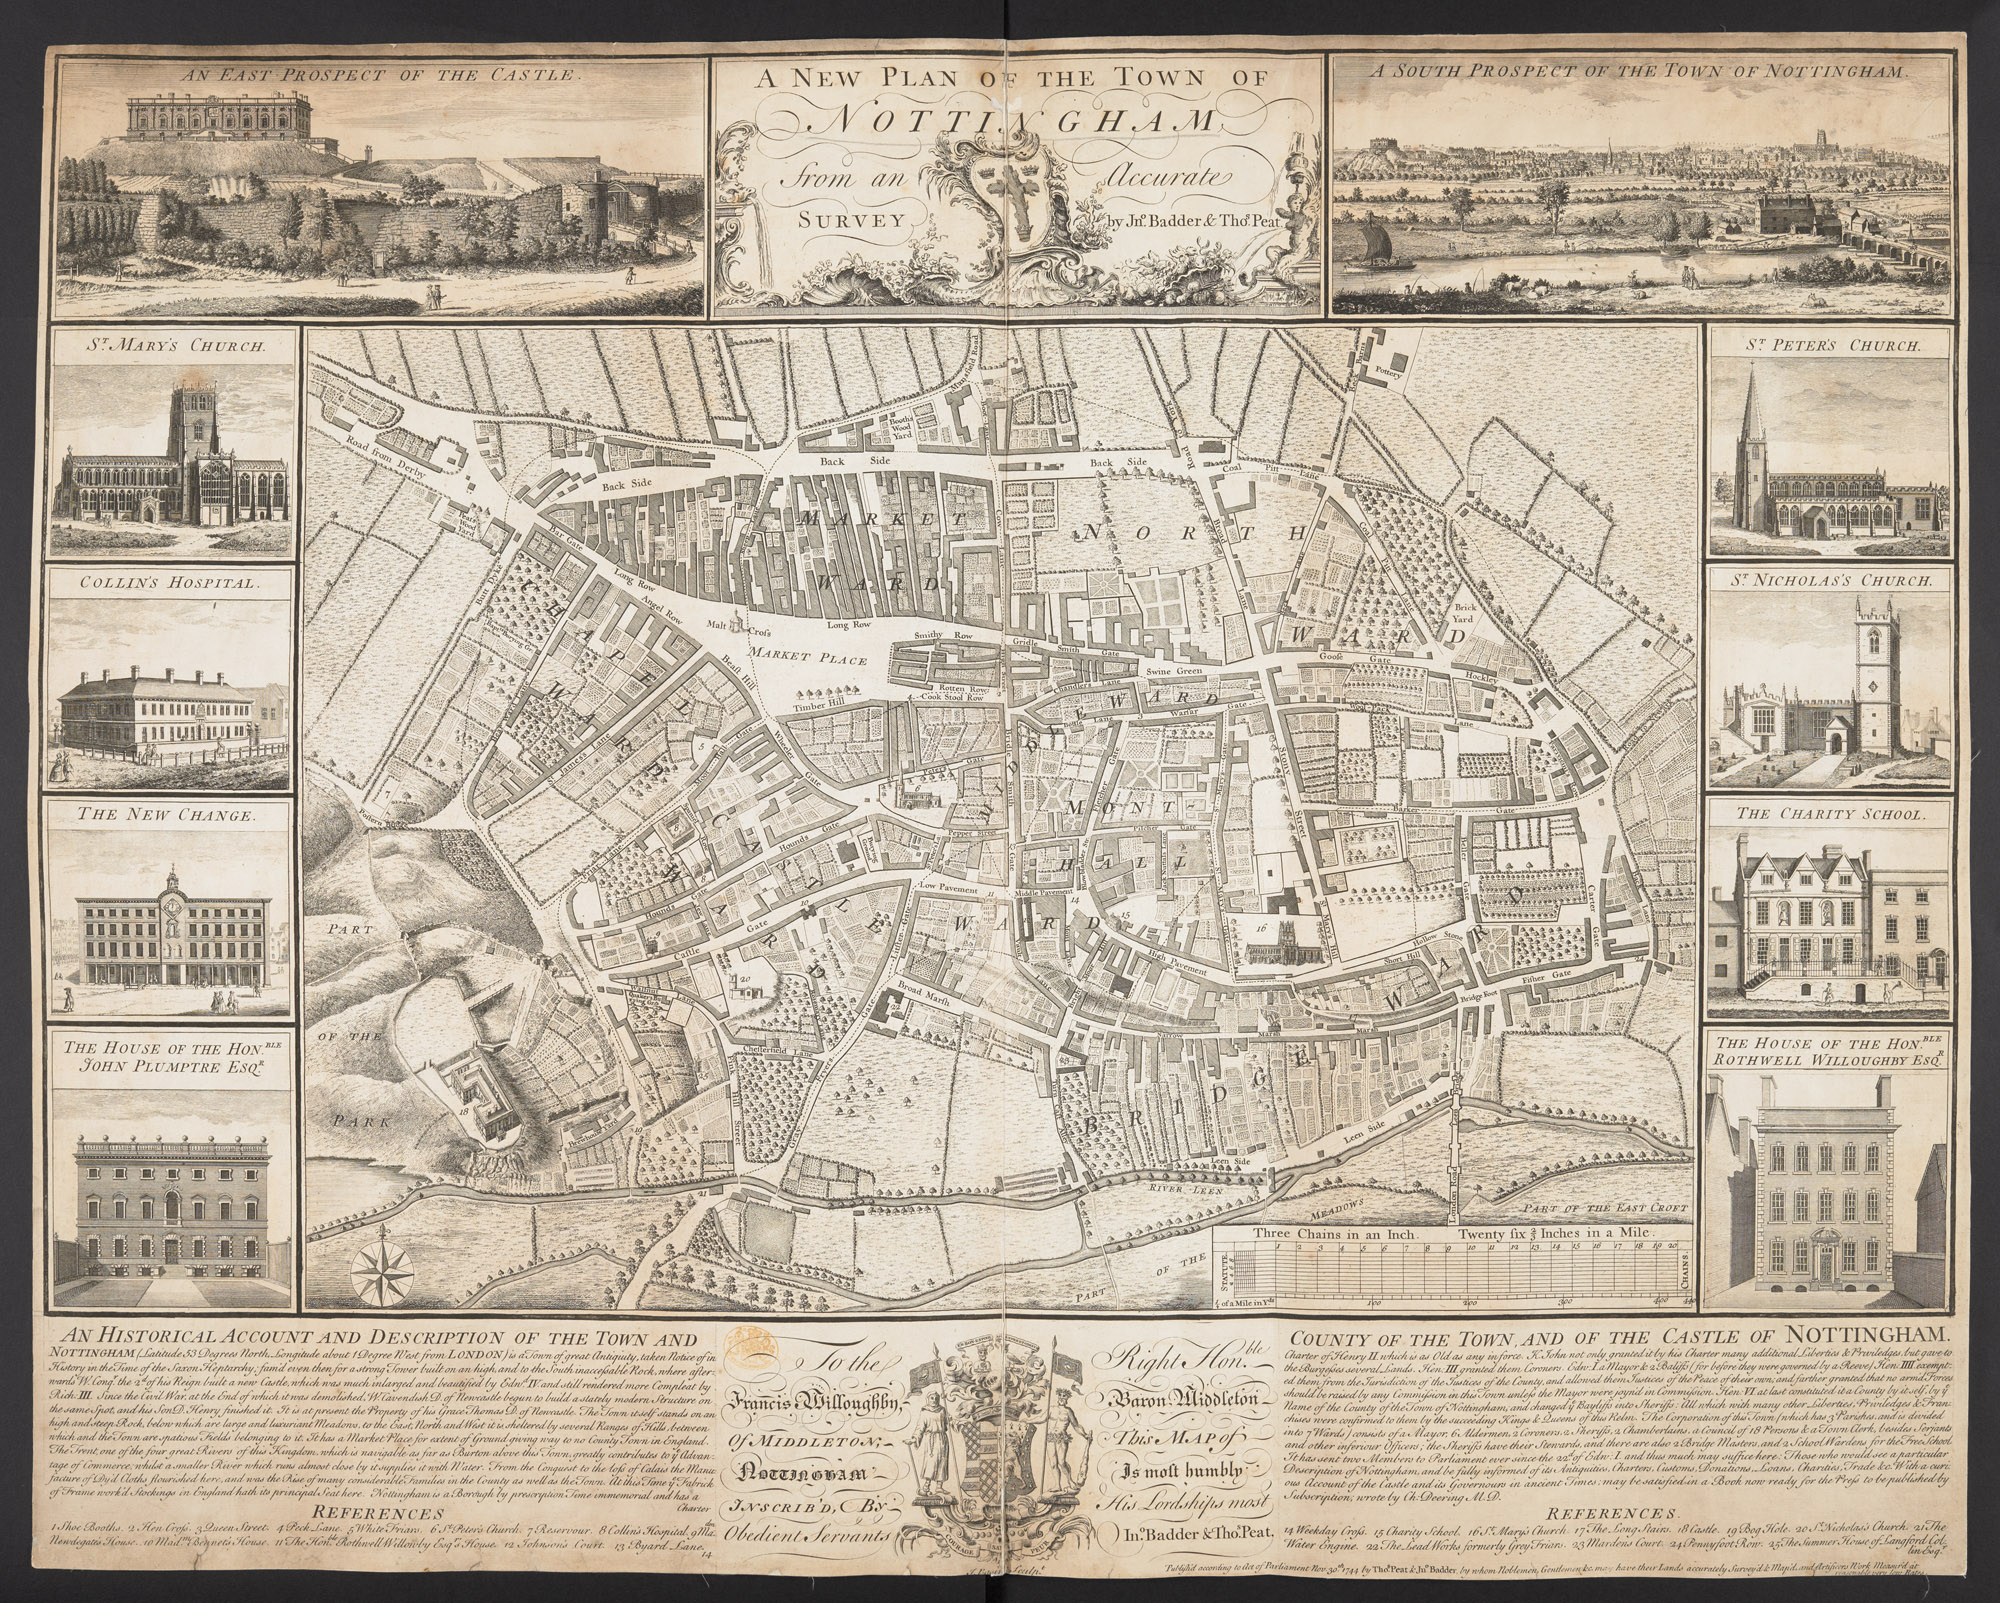 A new plan of the town of Nottingham